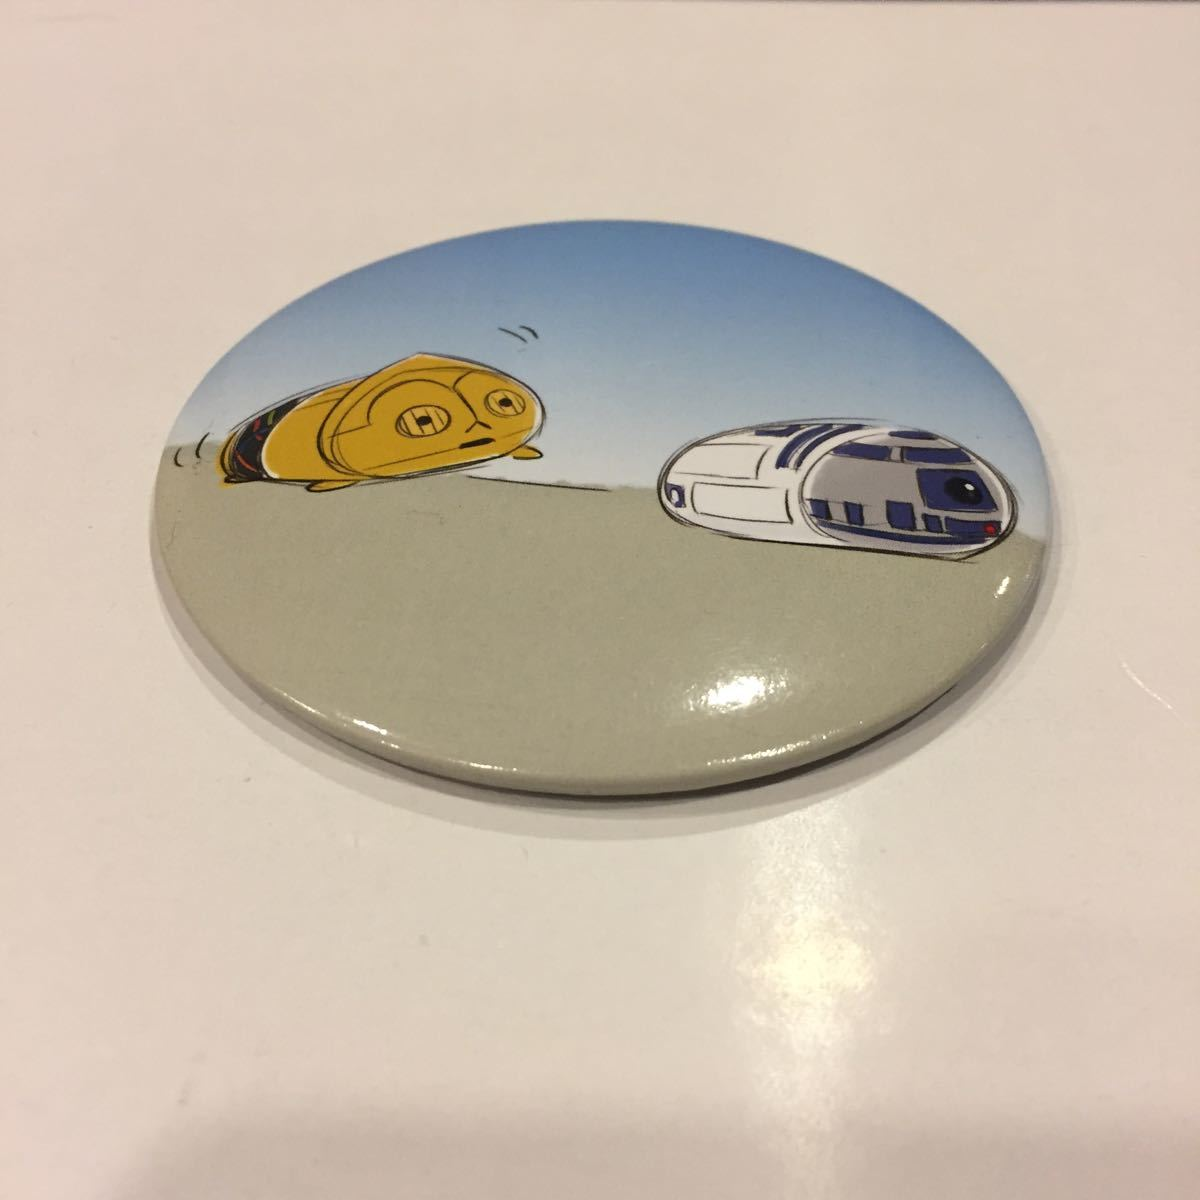 DROIDS R2-D2 /& C-3PO OFFICIAL STAR WARS SET OF 3 METAL PIN BADGES *NEW BB-8